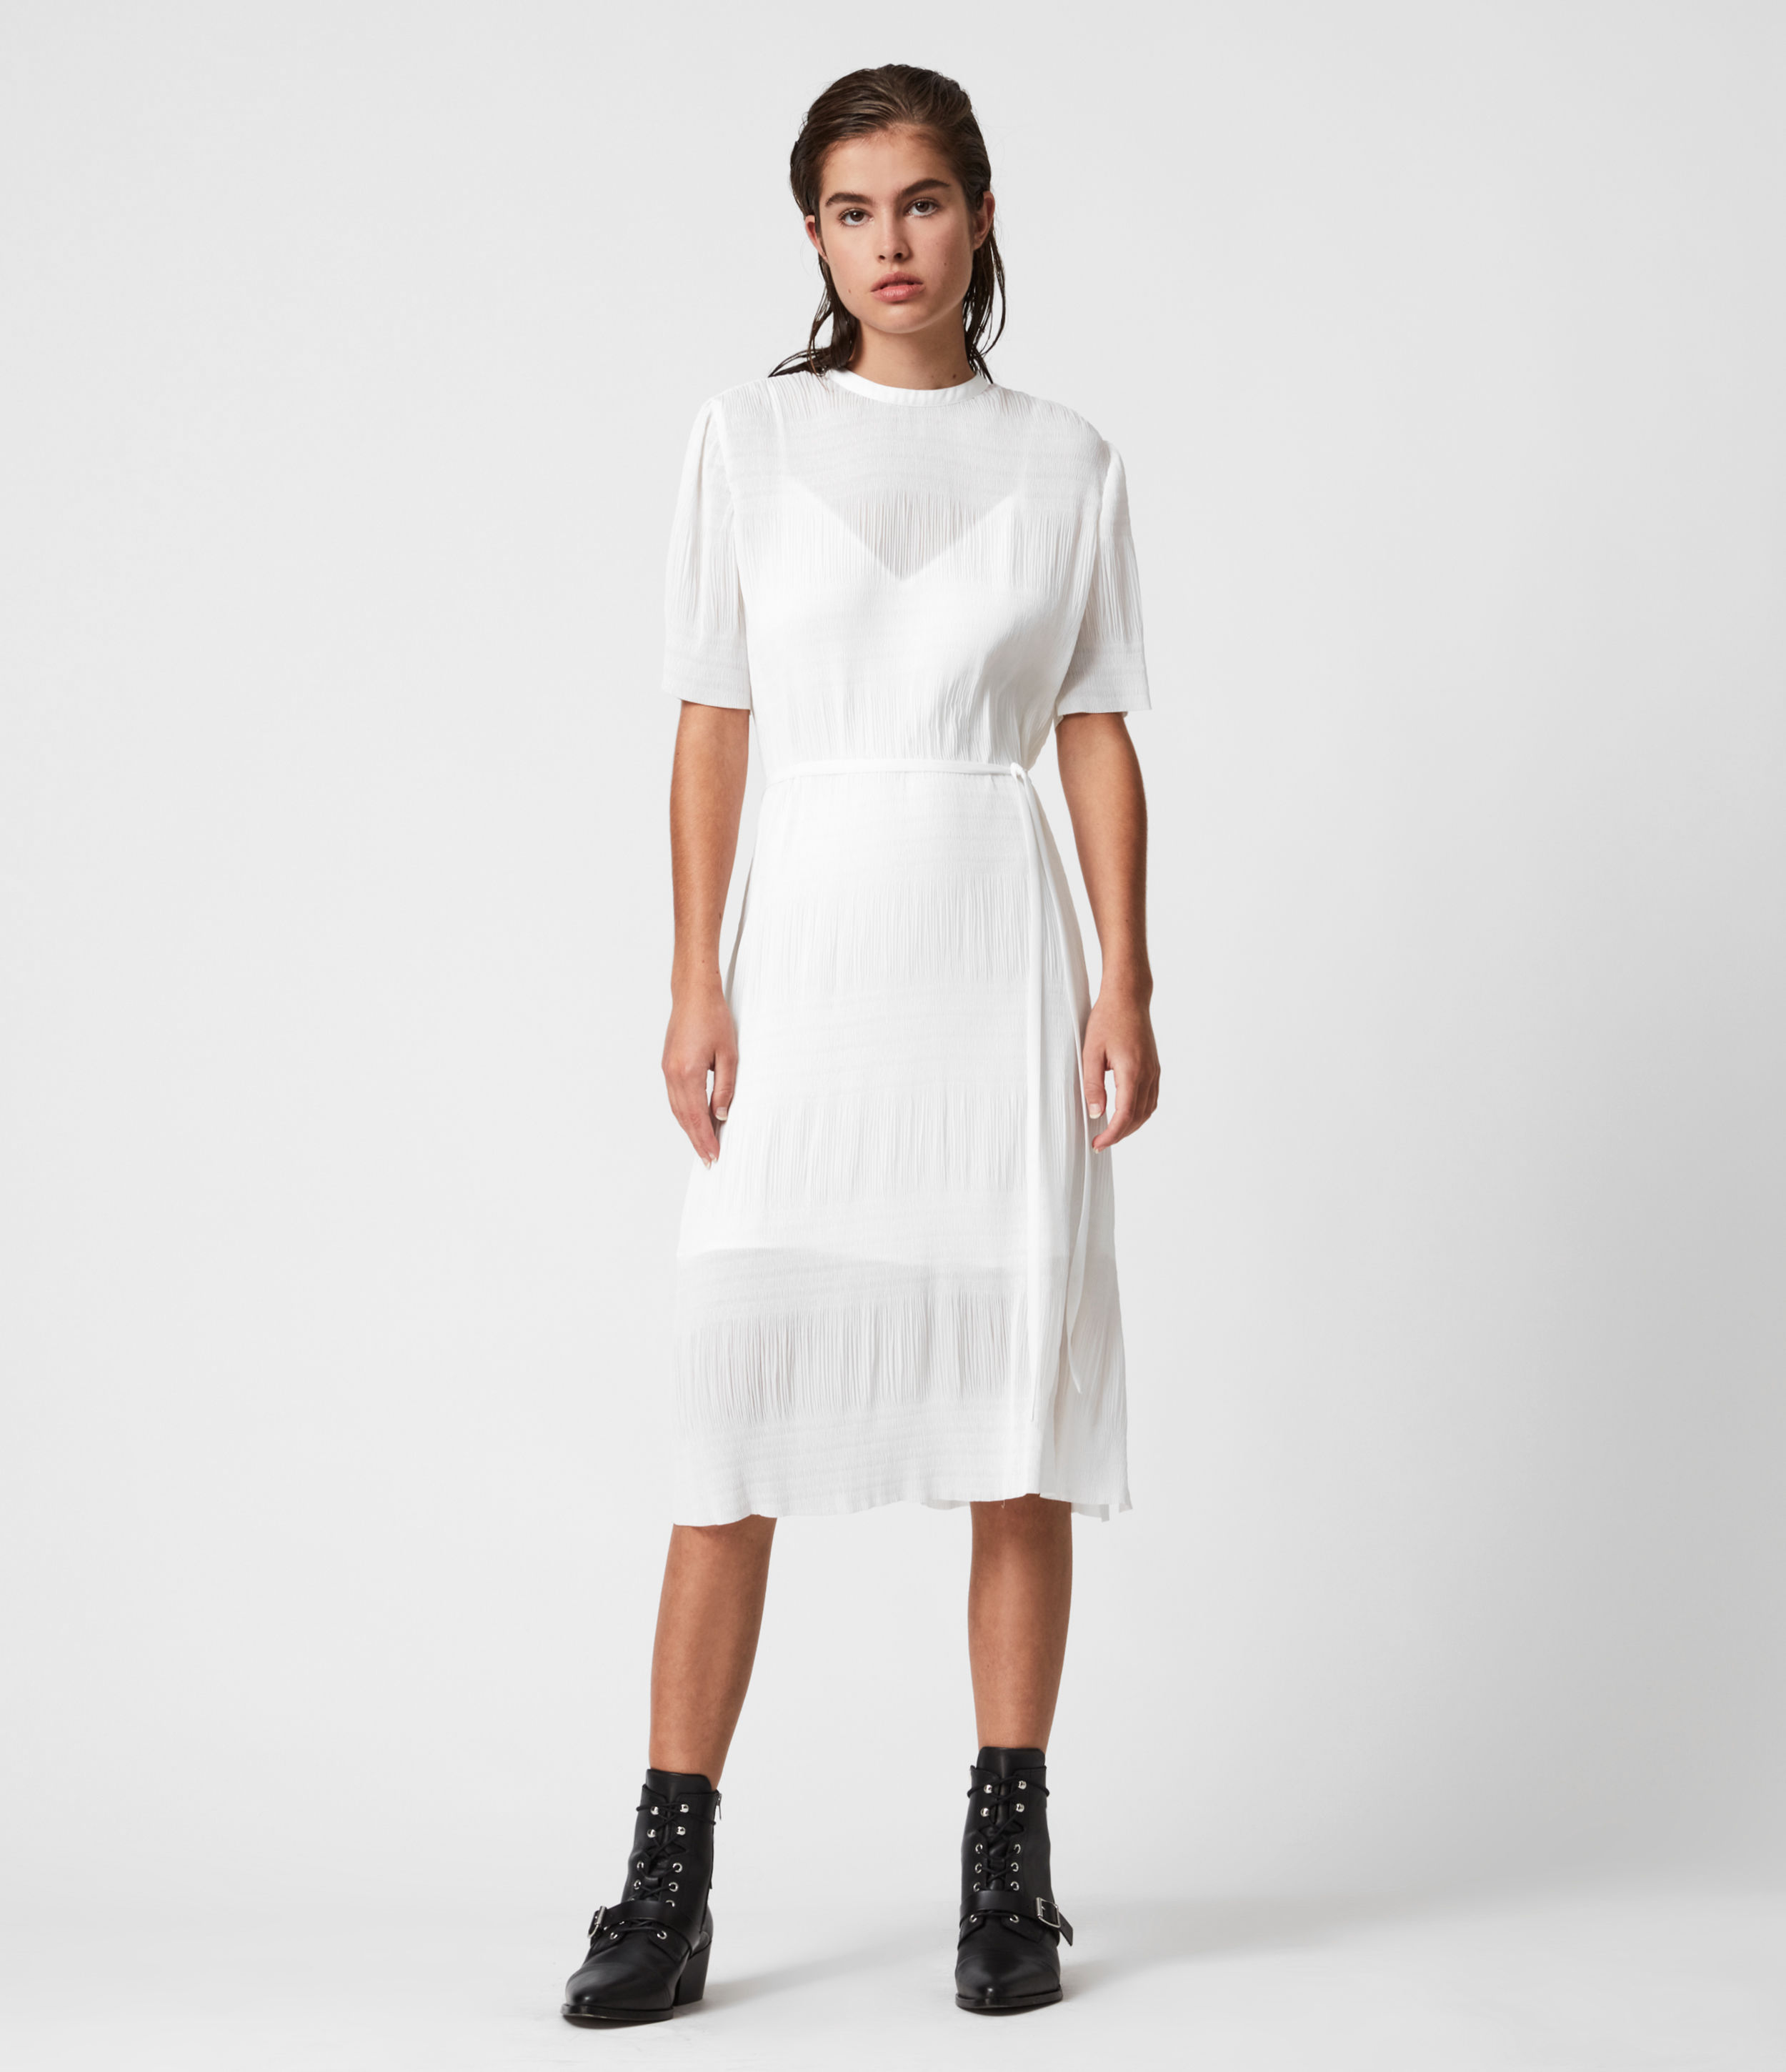 AllSaints Kano Dress